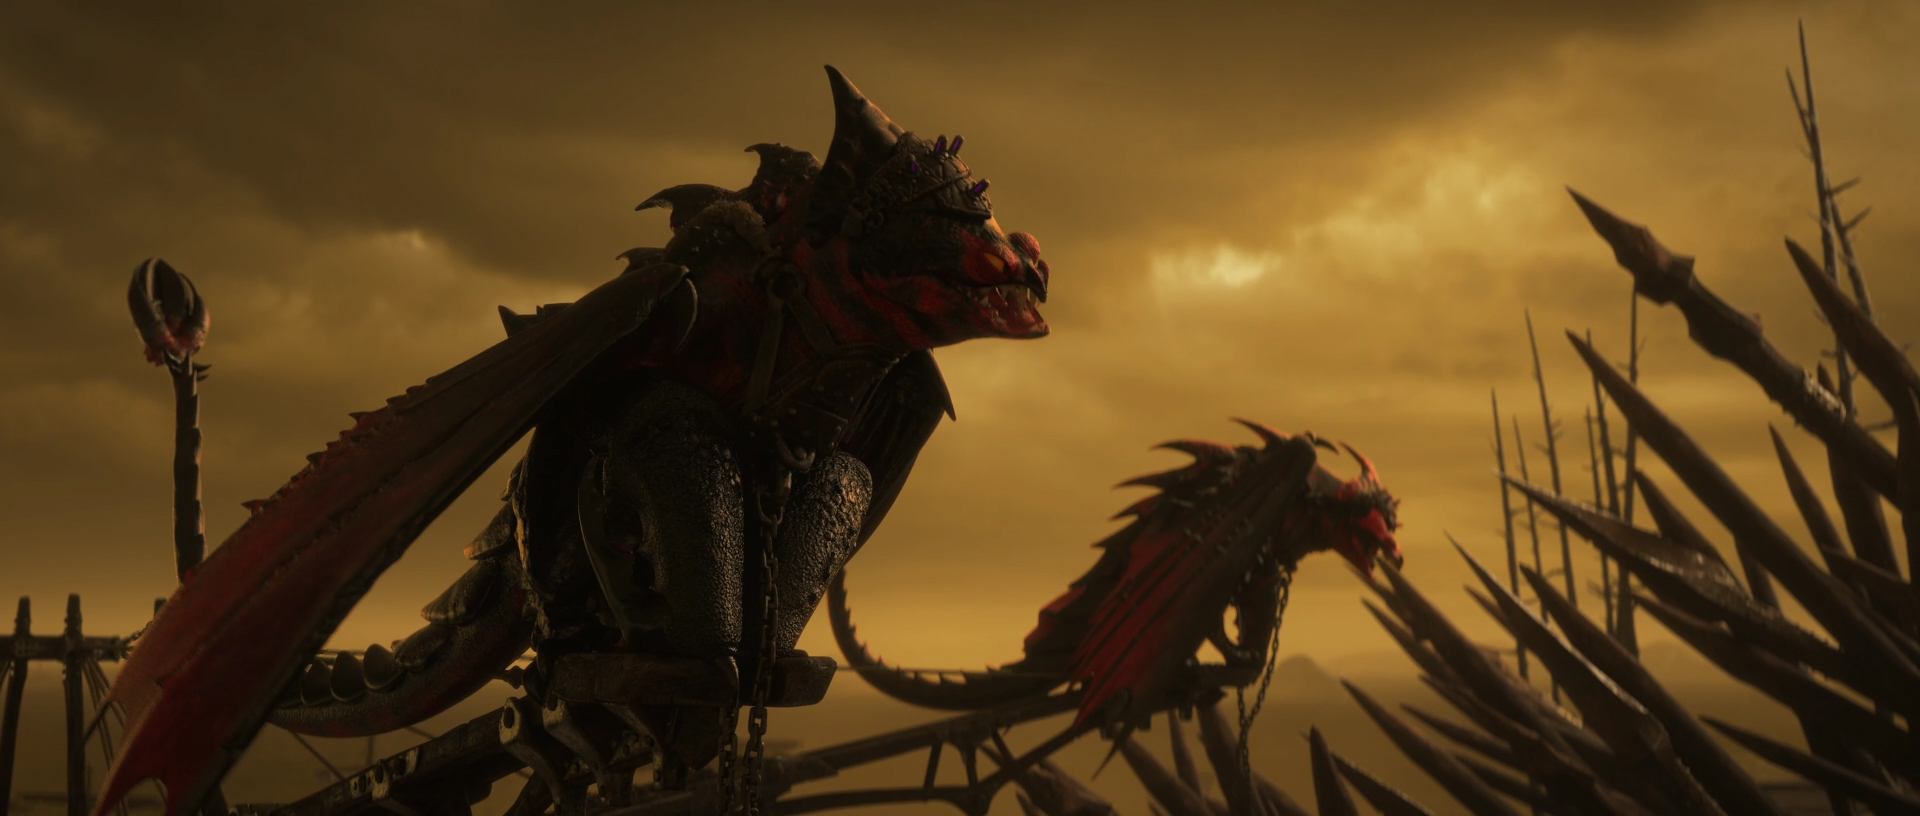 Grimmel 39 s deathgrippers how to train your dragon wiki fandom powered by wikia - Image de dragon ...